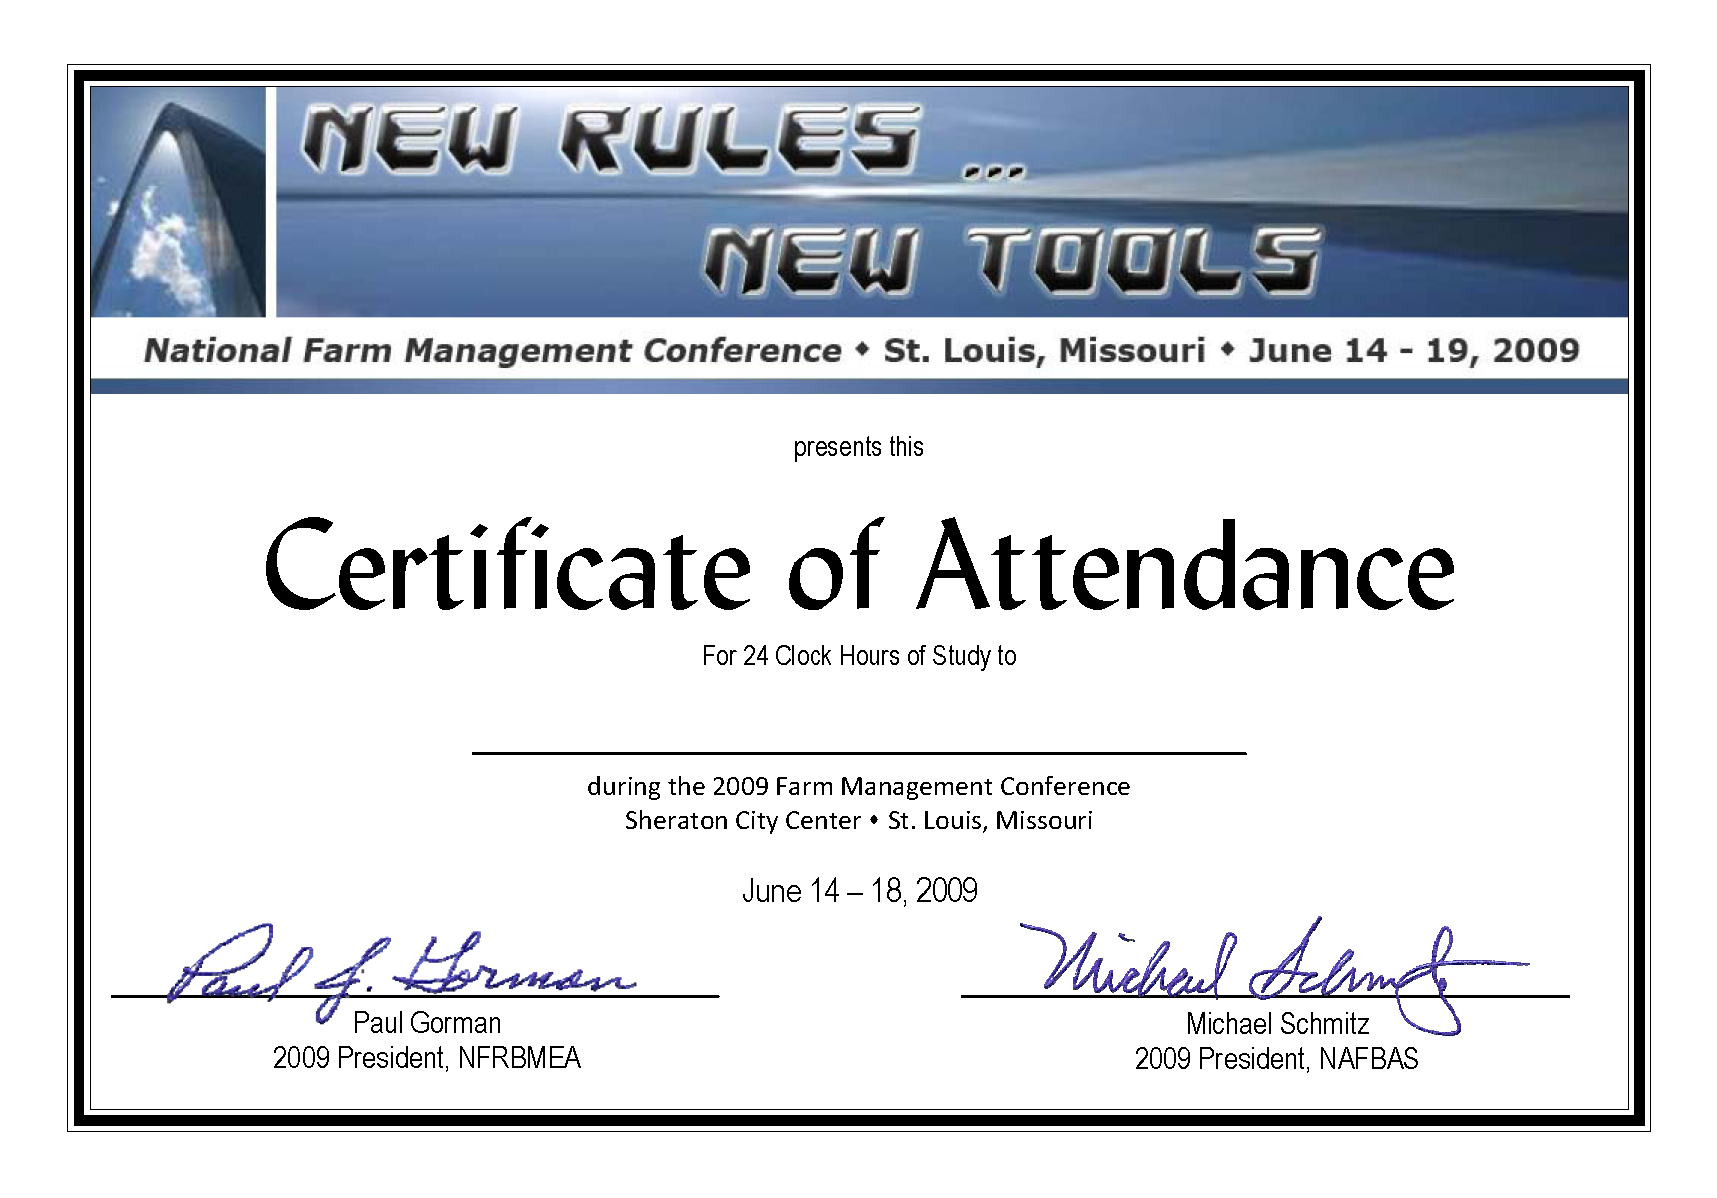 Conference Certificate Of Attendance Template - Great With Regard To Conference Certificate Of Attendance Template